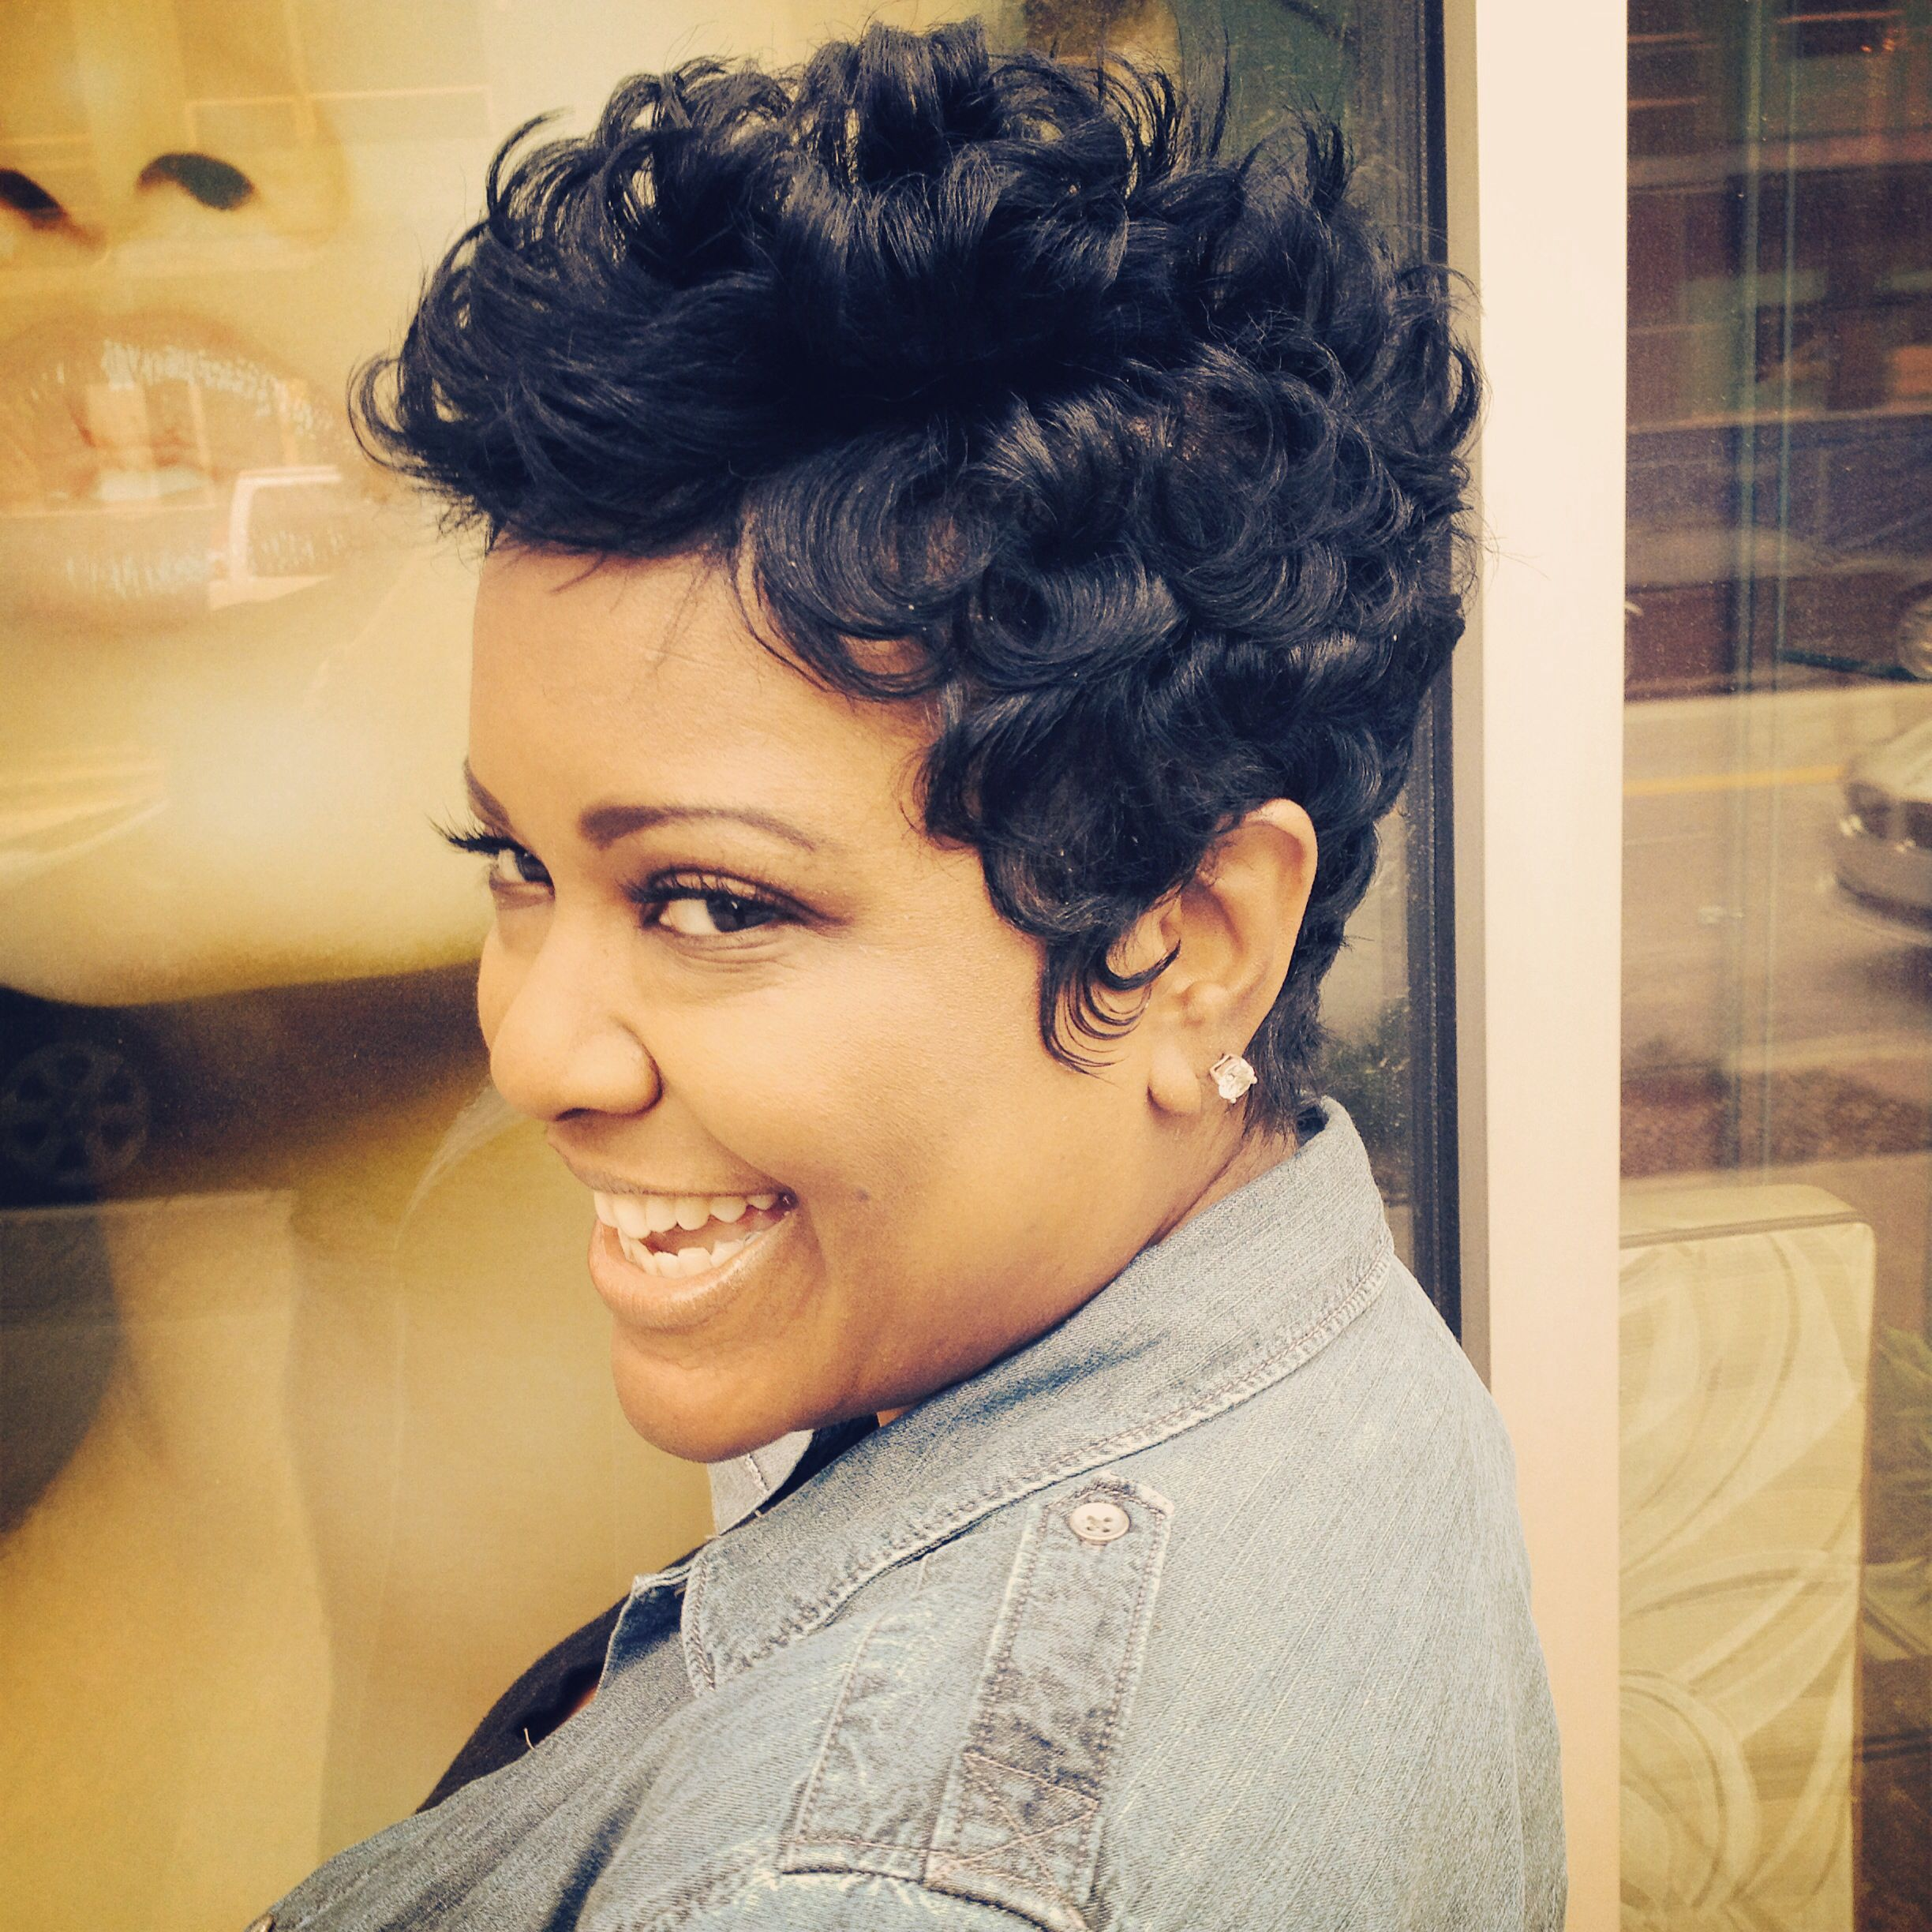 have a great hair day! like the river salon. best of atlanta